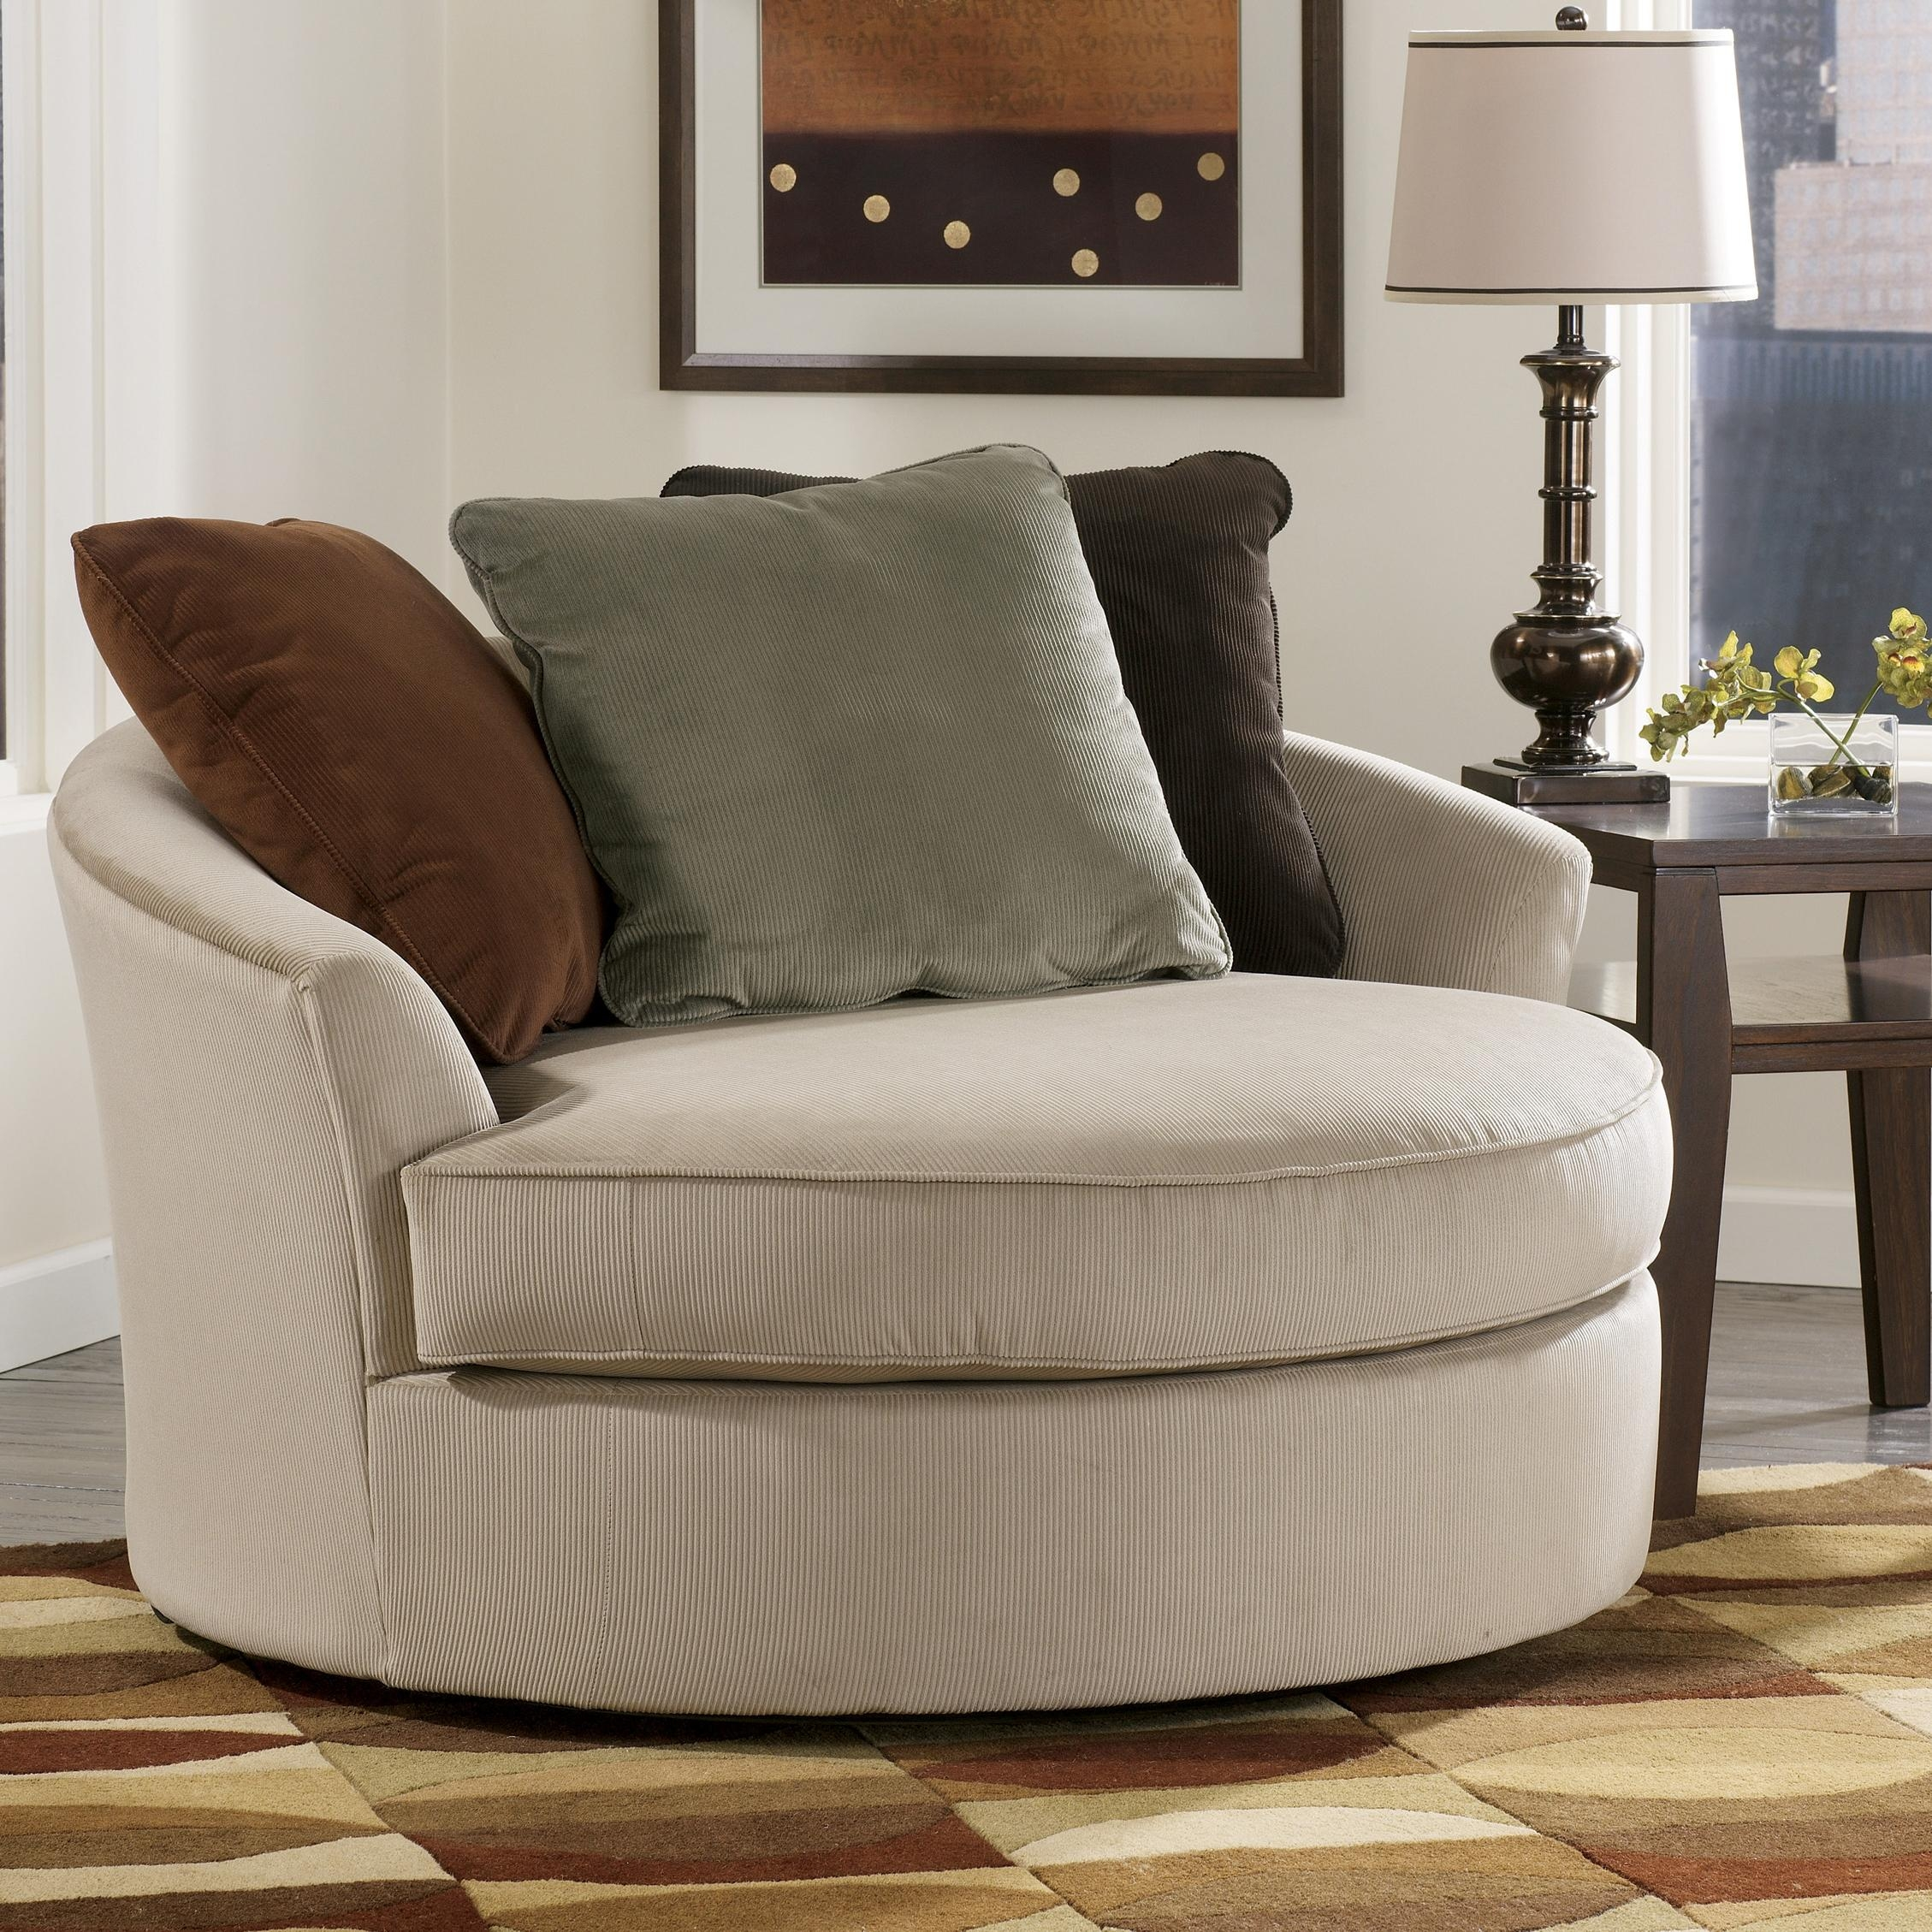 Beautiful Oversized Living Room Furniture Contemporary Pertaining To Large Sofa Chairs (Image 1 of 15)